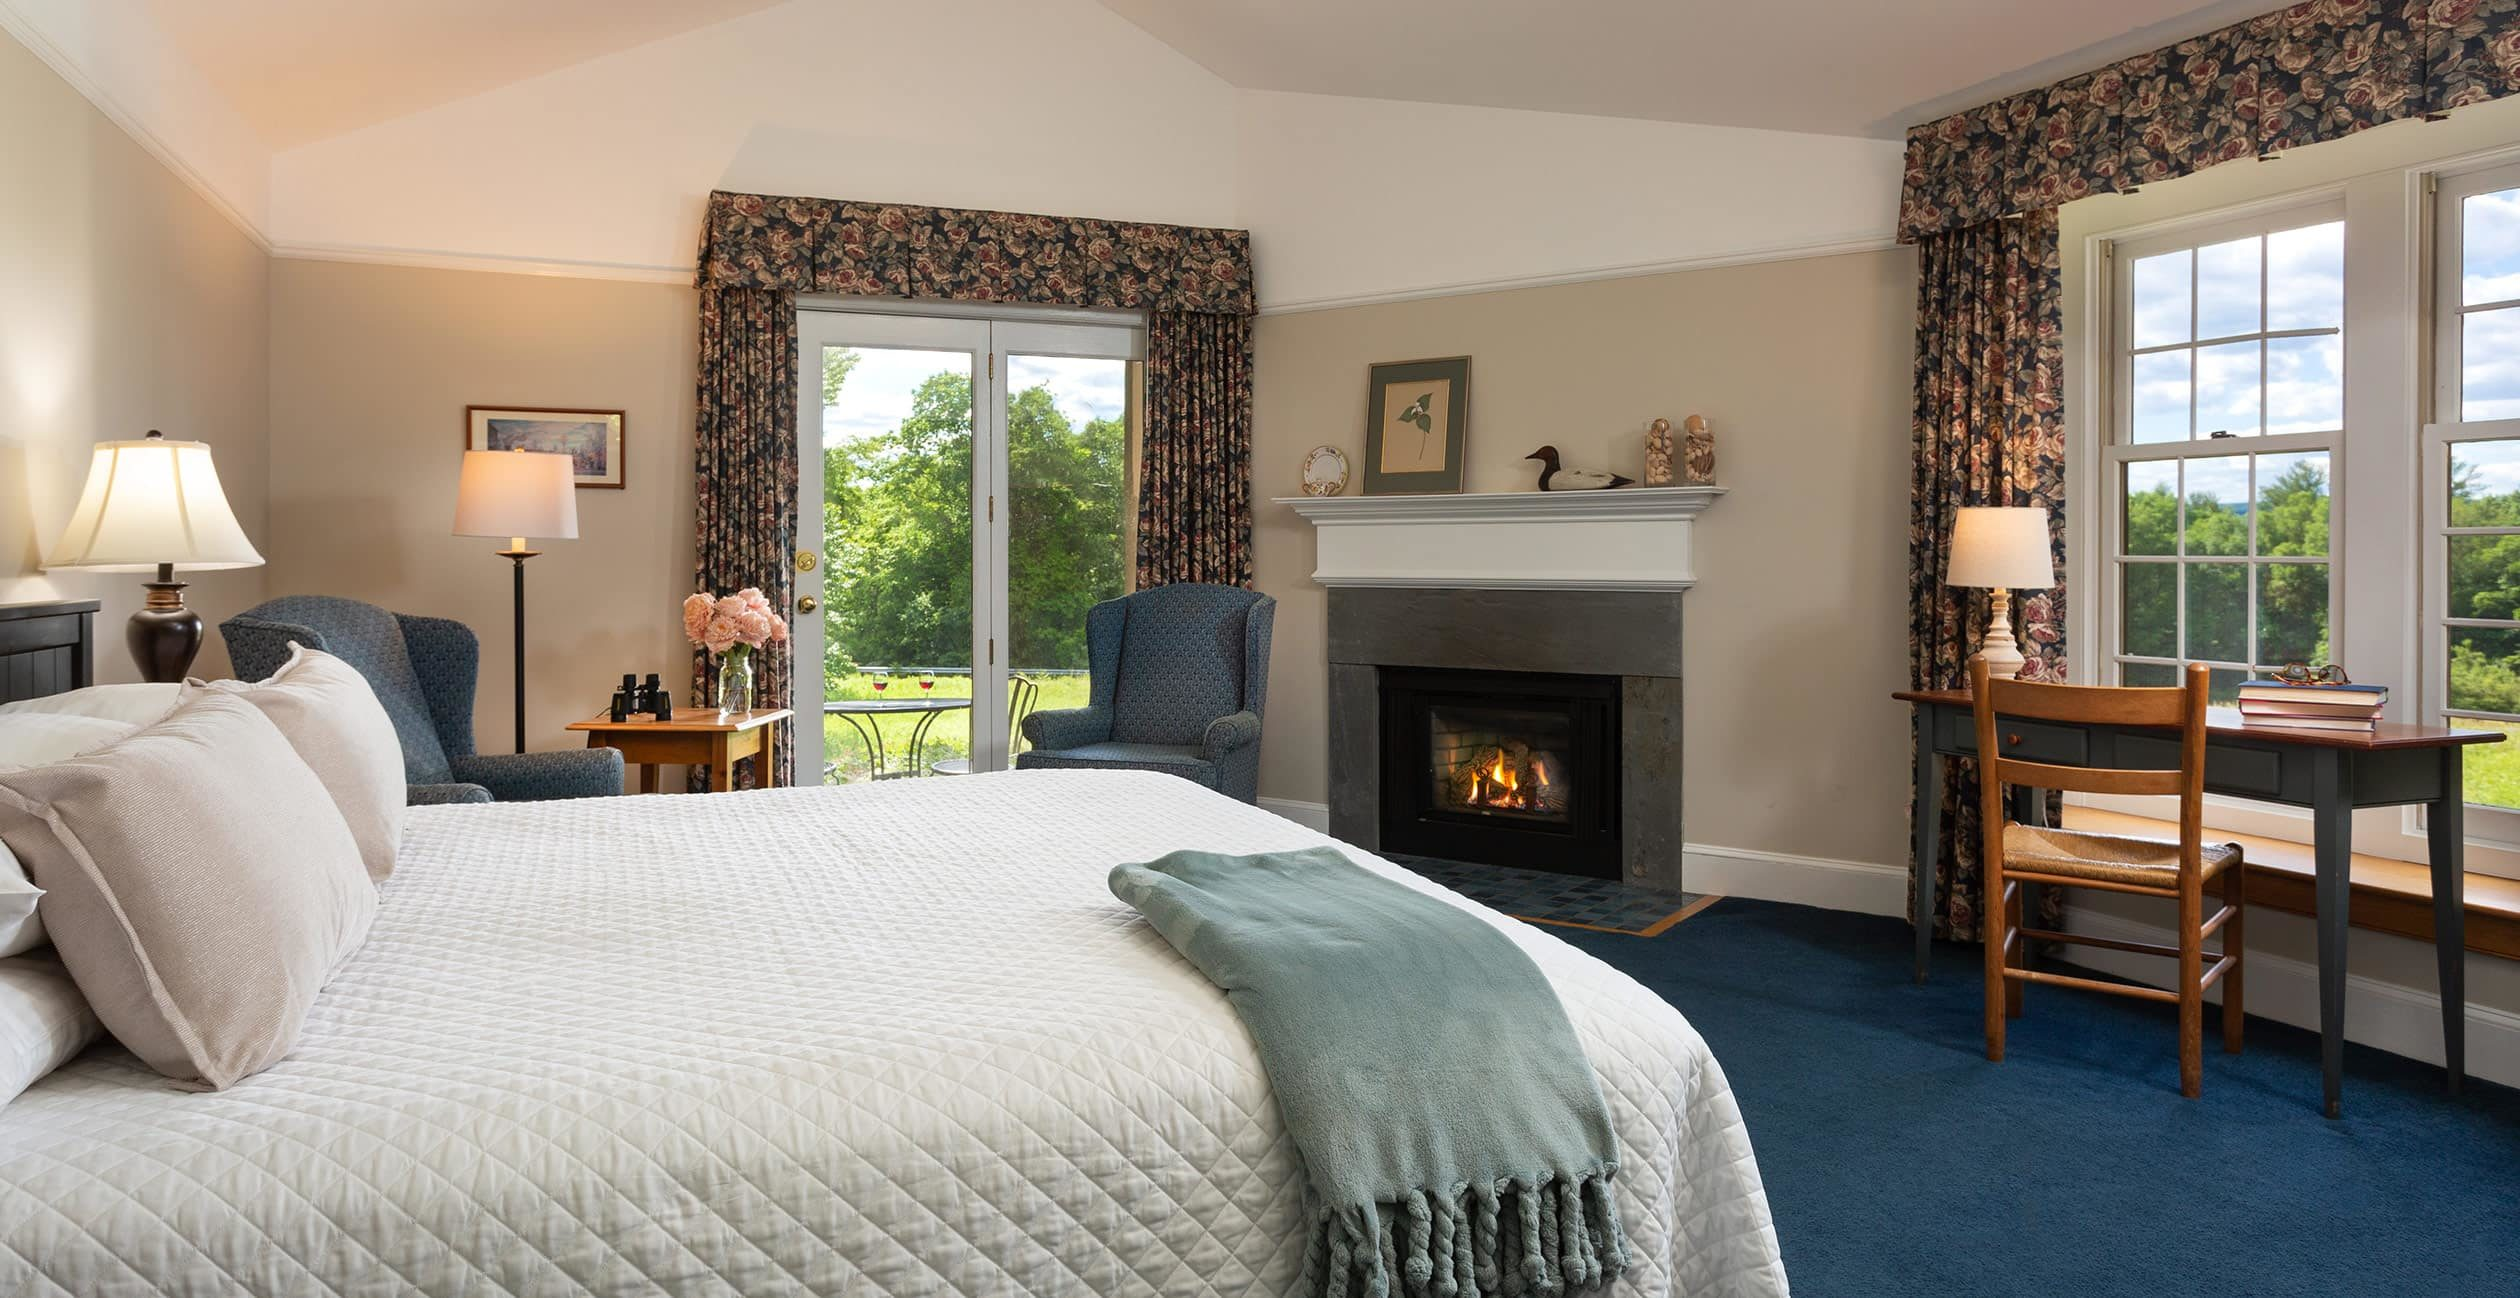 Room 22, perfect for romantic New Hampshire getaways